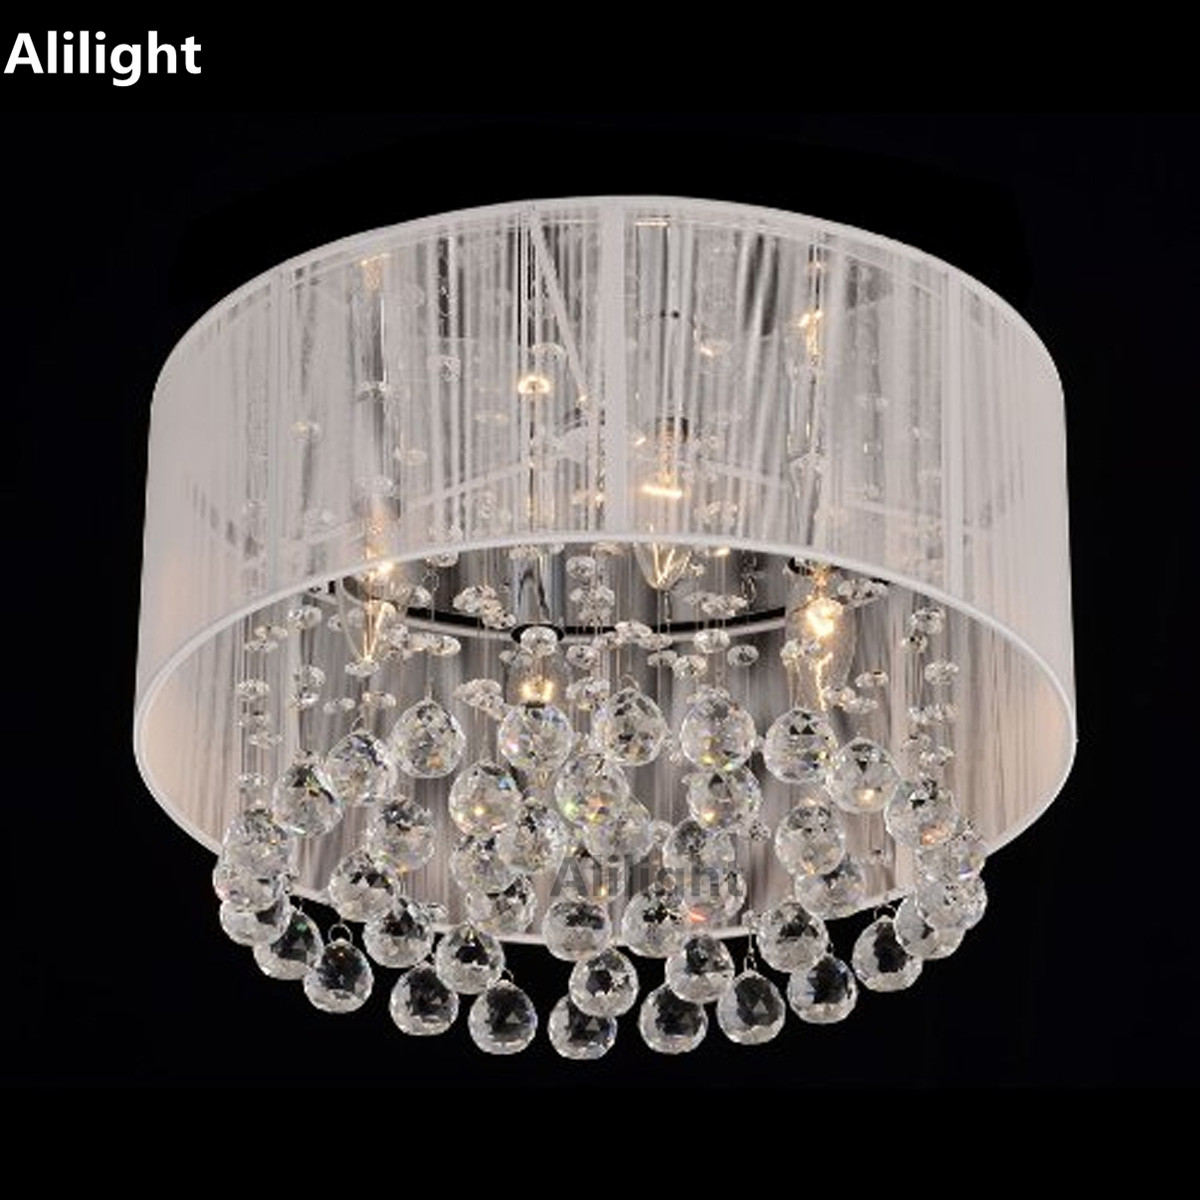 Contemporary Ceiling Light Simple Crystal Ceiling Lamp Drum Shape Flush  Mount Lighting Dining Room Indoor Lighting